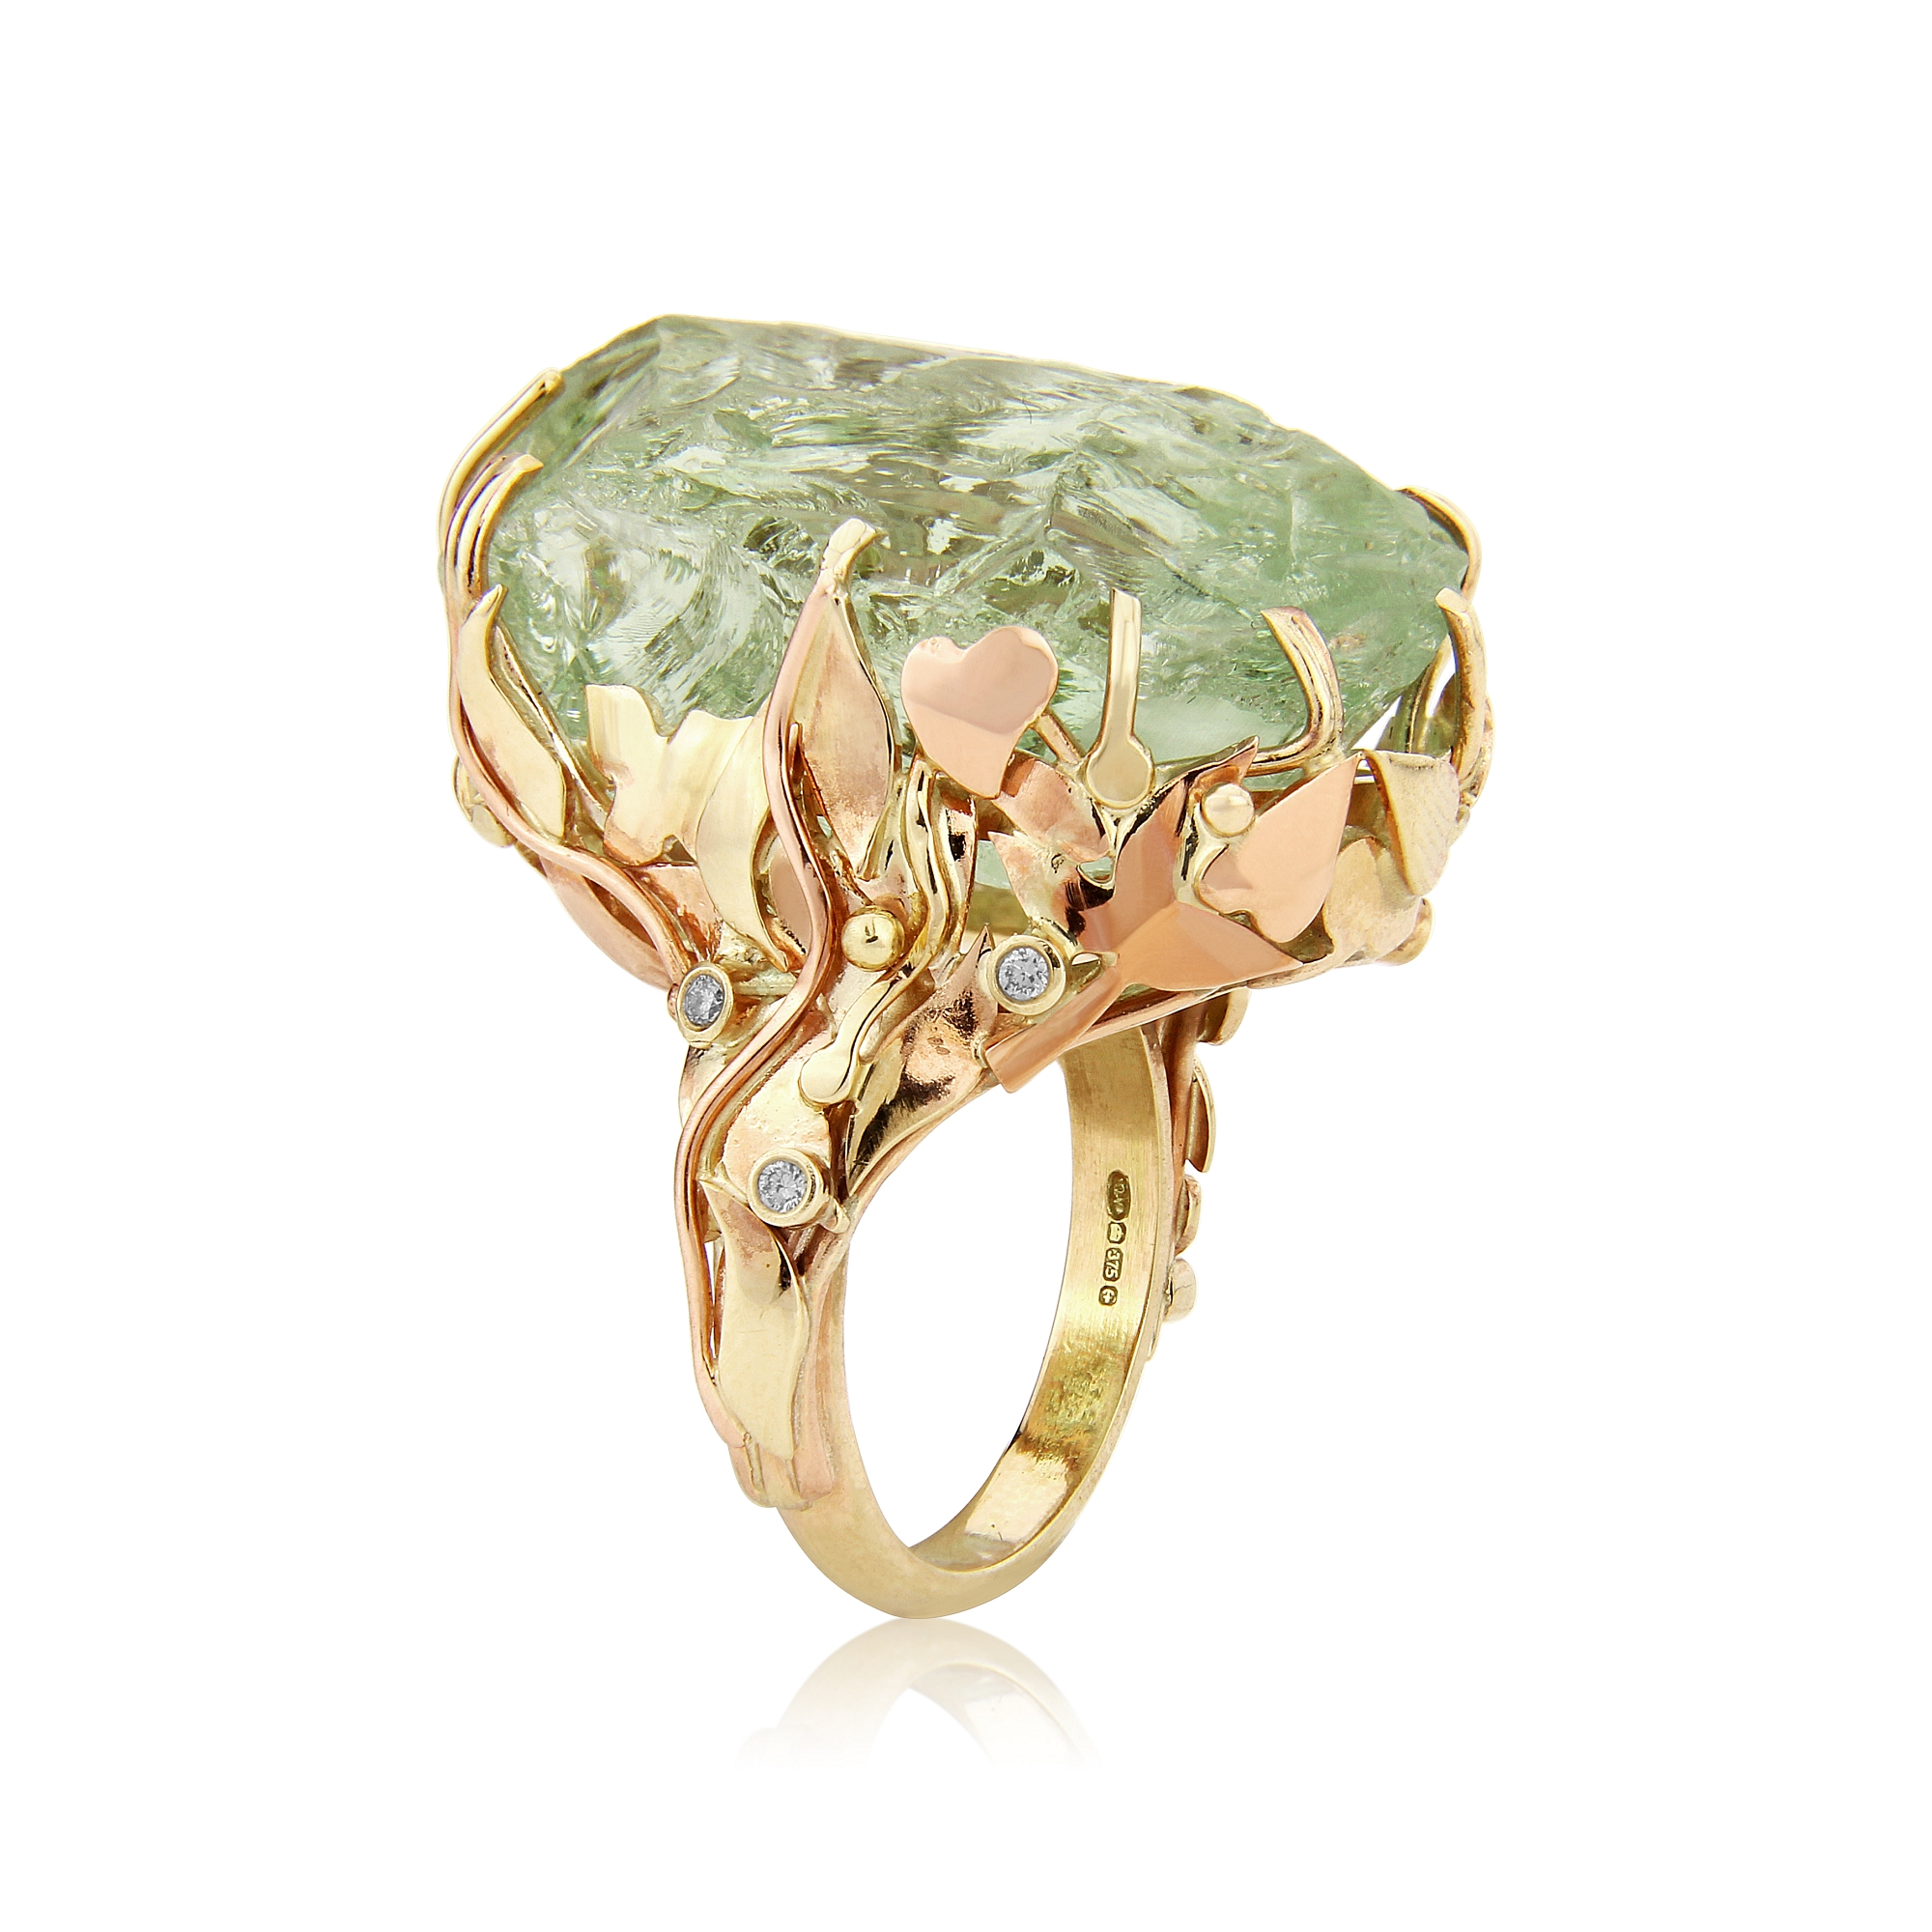 Large Green Prasiolite and diamond dress ring mounted in 9ct yellow and red gold featuring QVJ,s signature leaves.